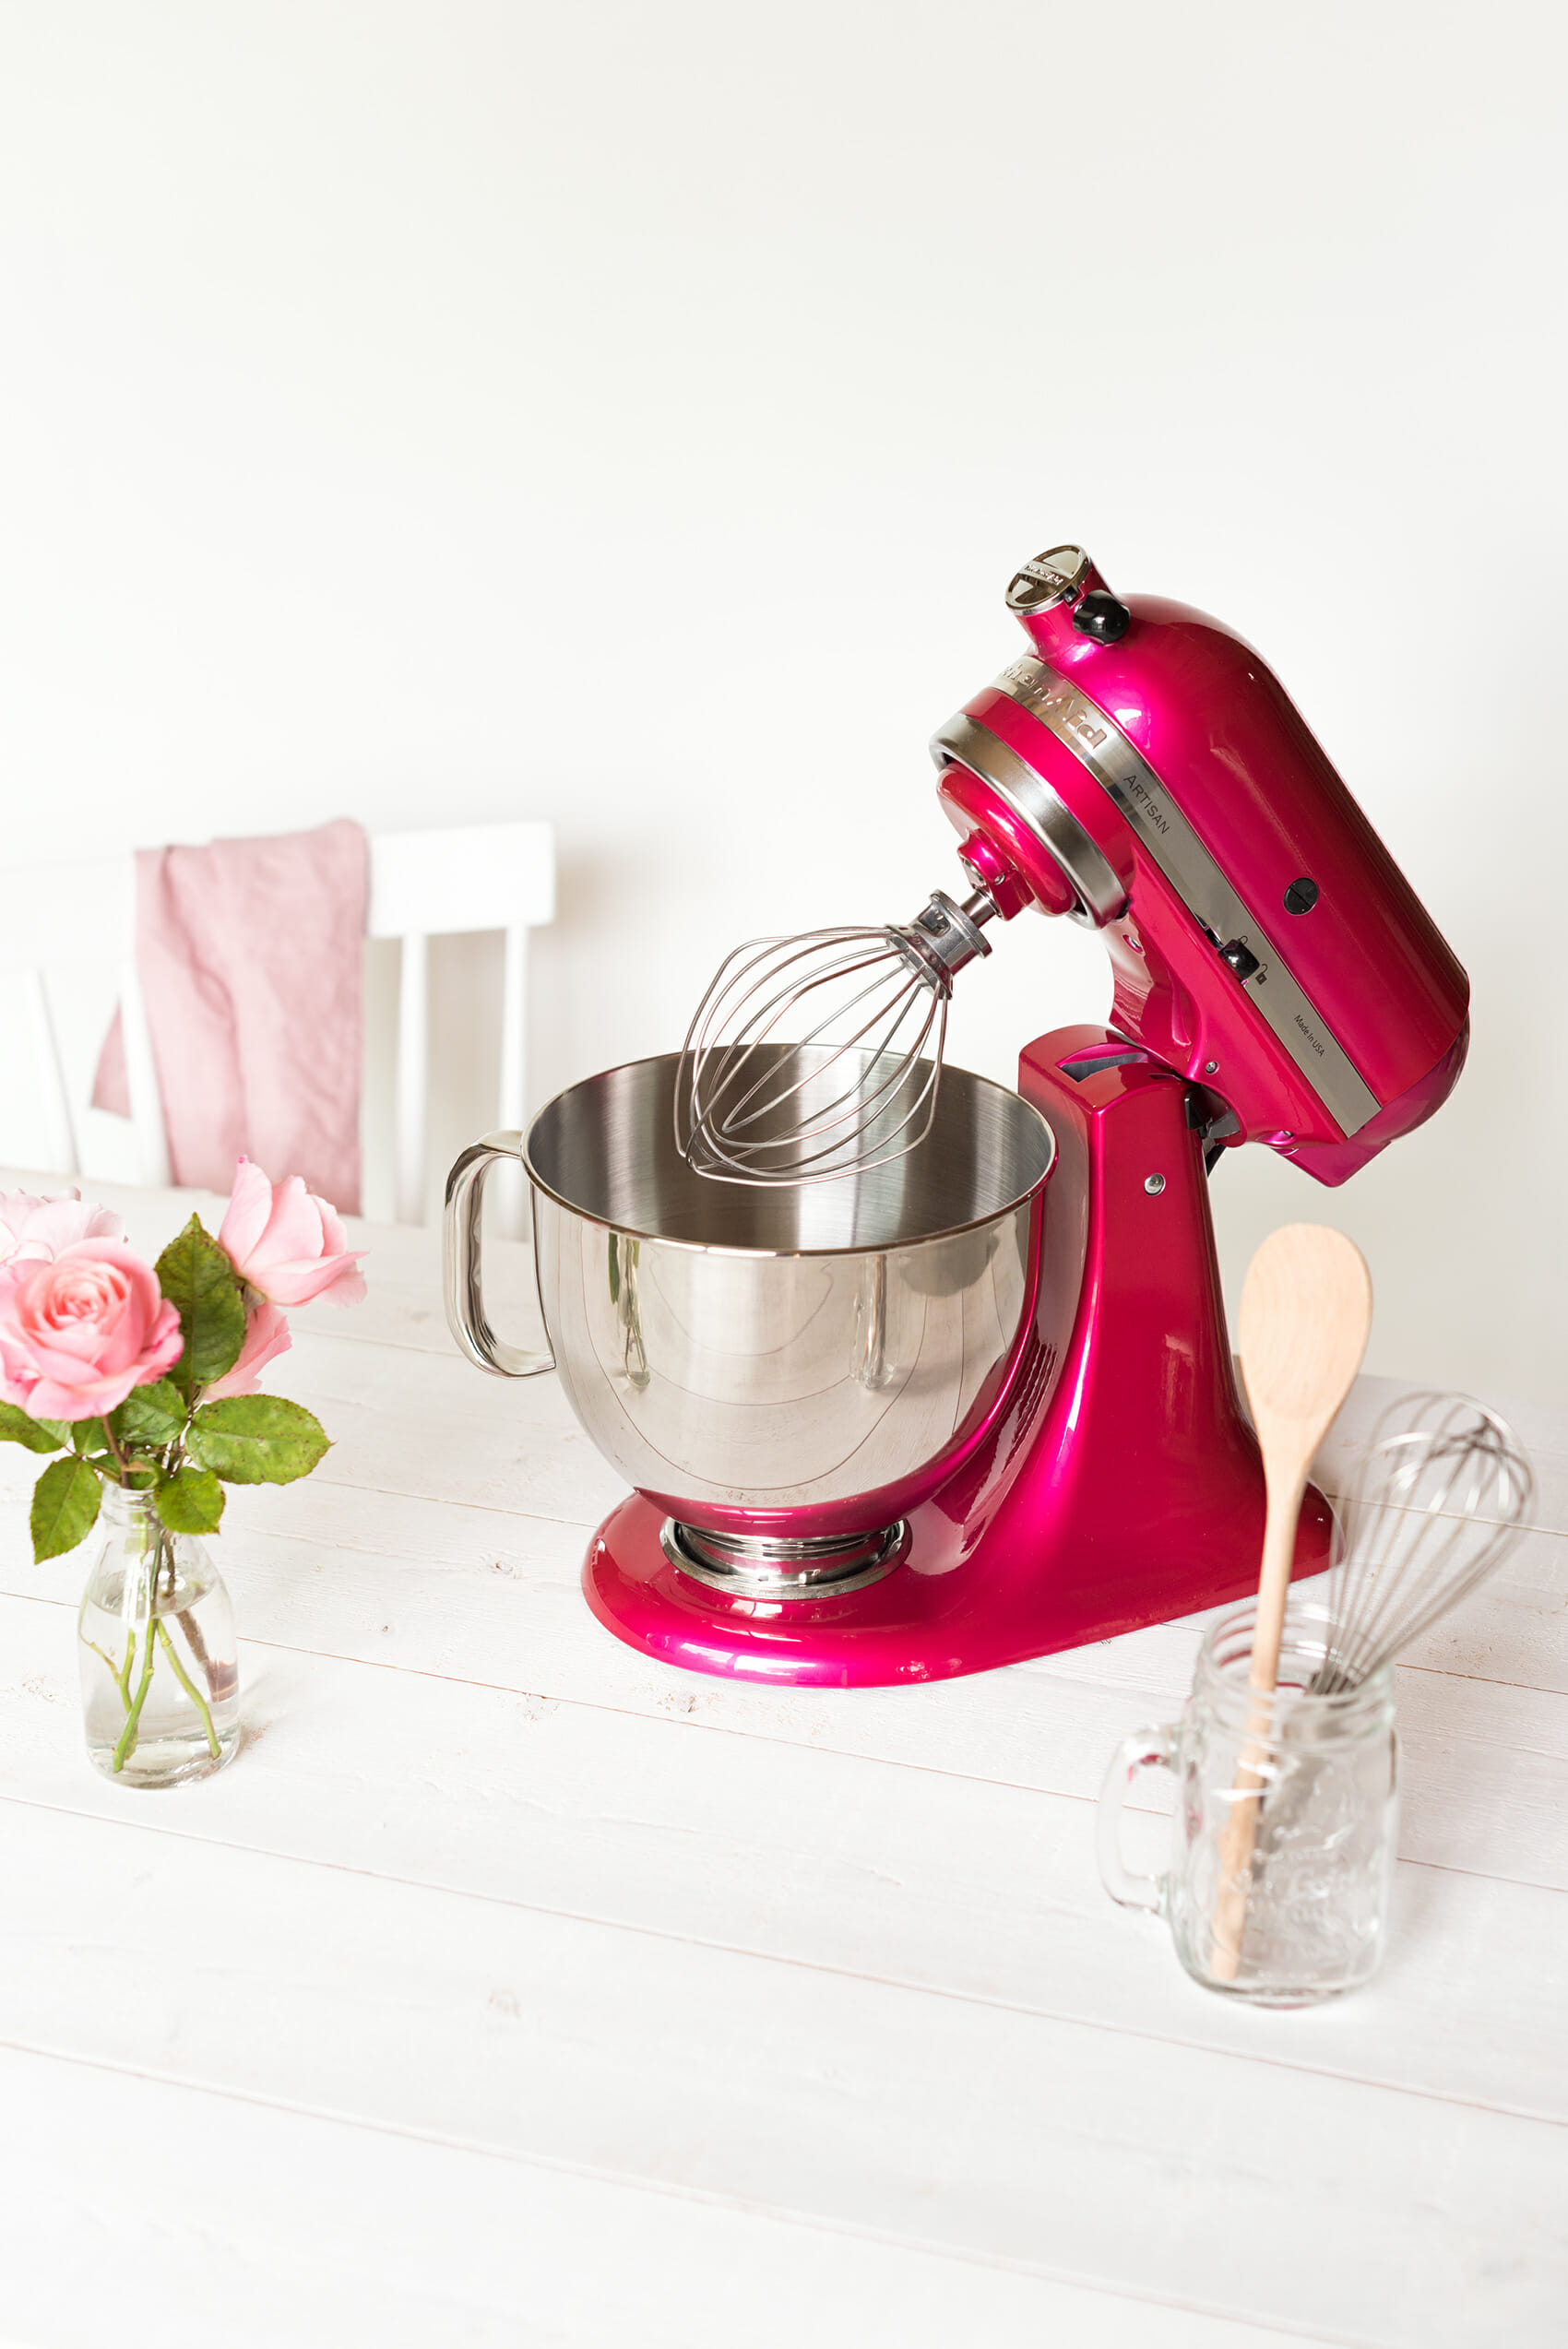 Octobre Rose Kitchenaid Lilie Bakery